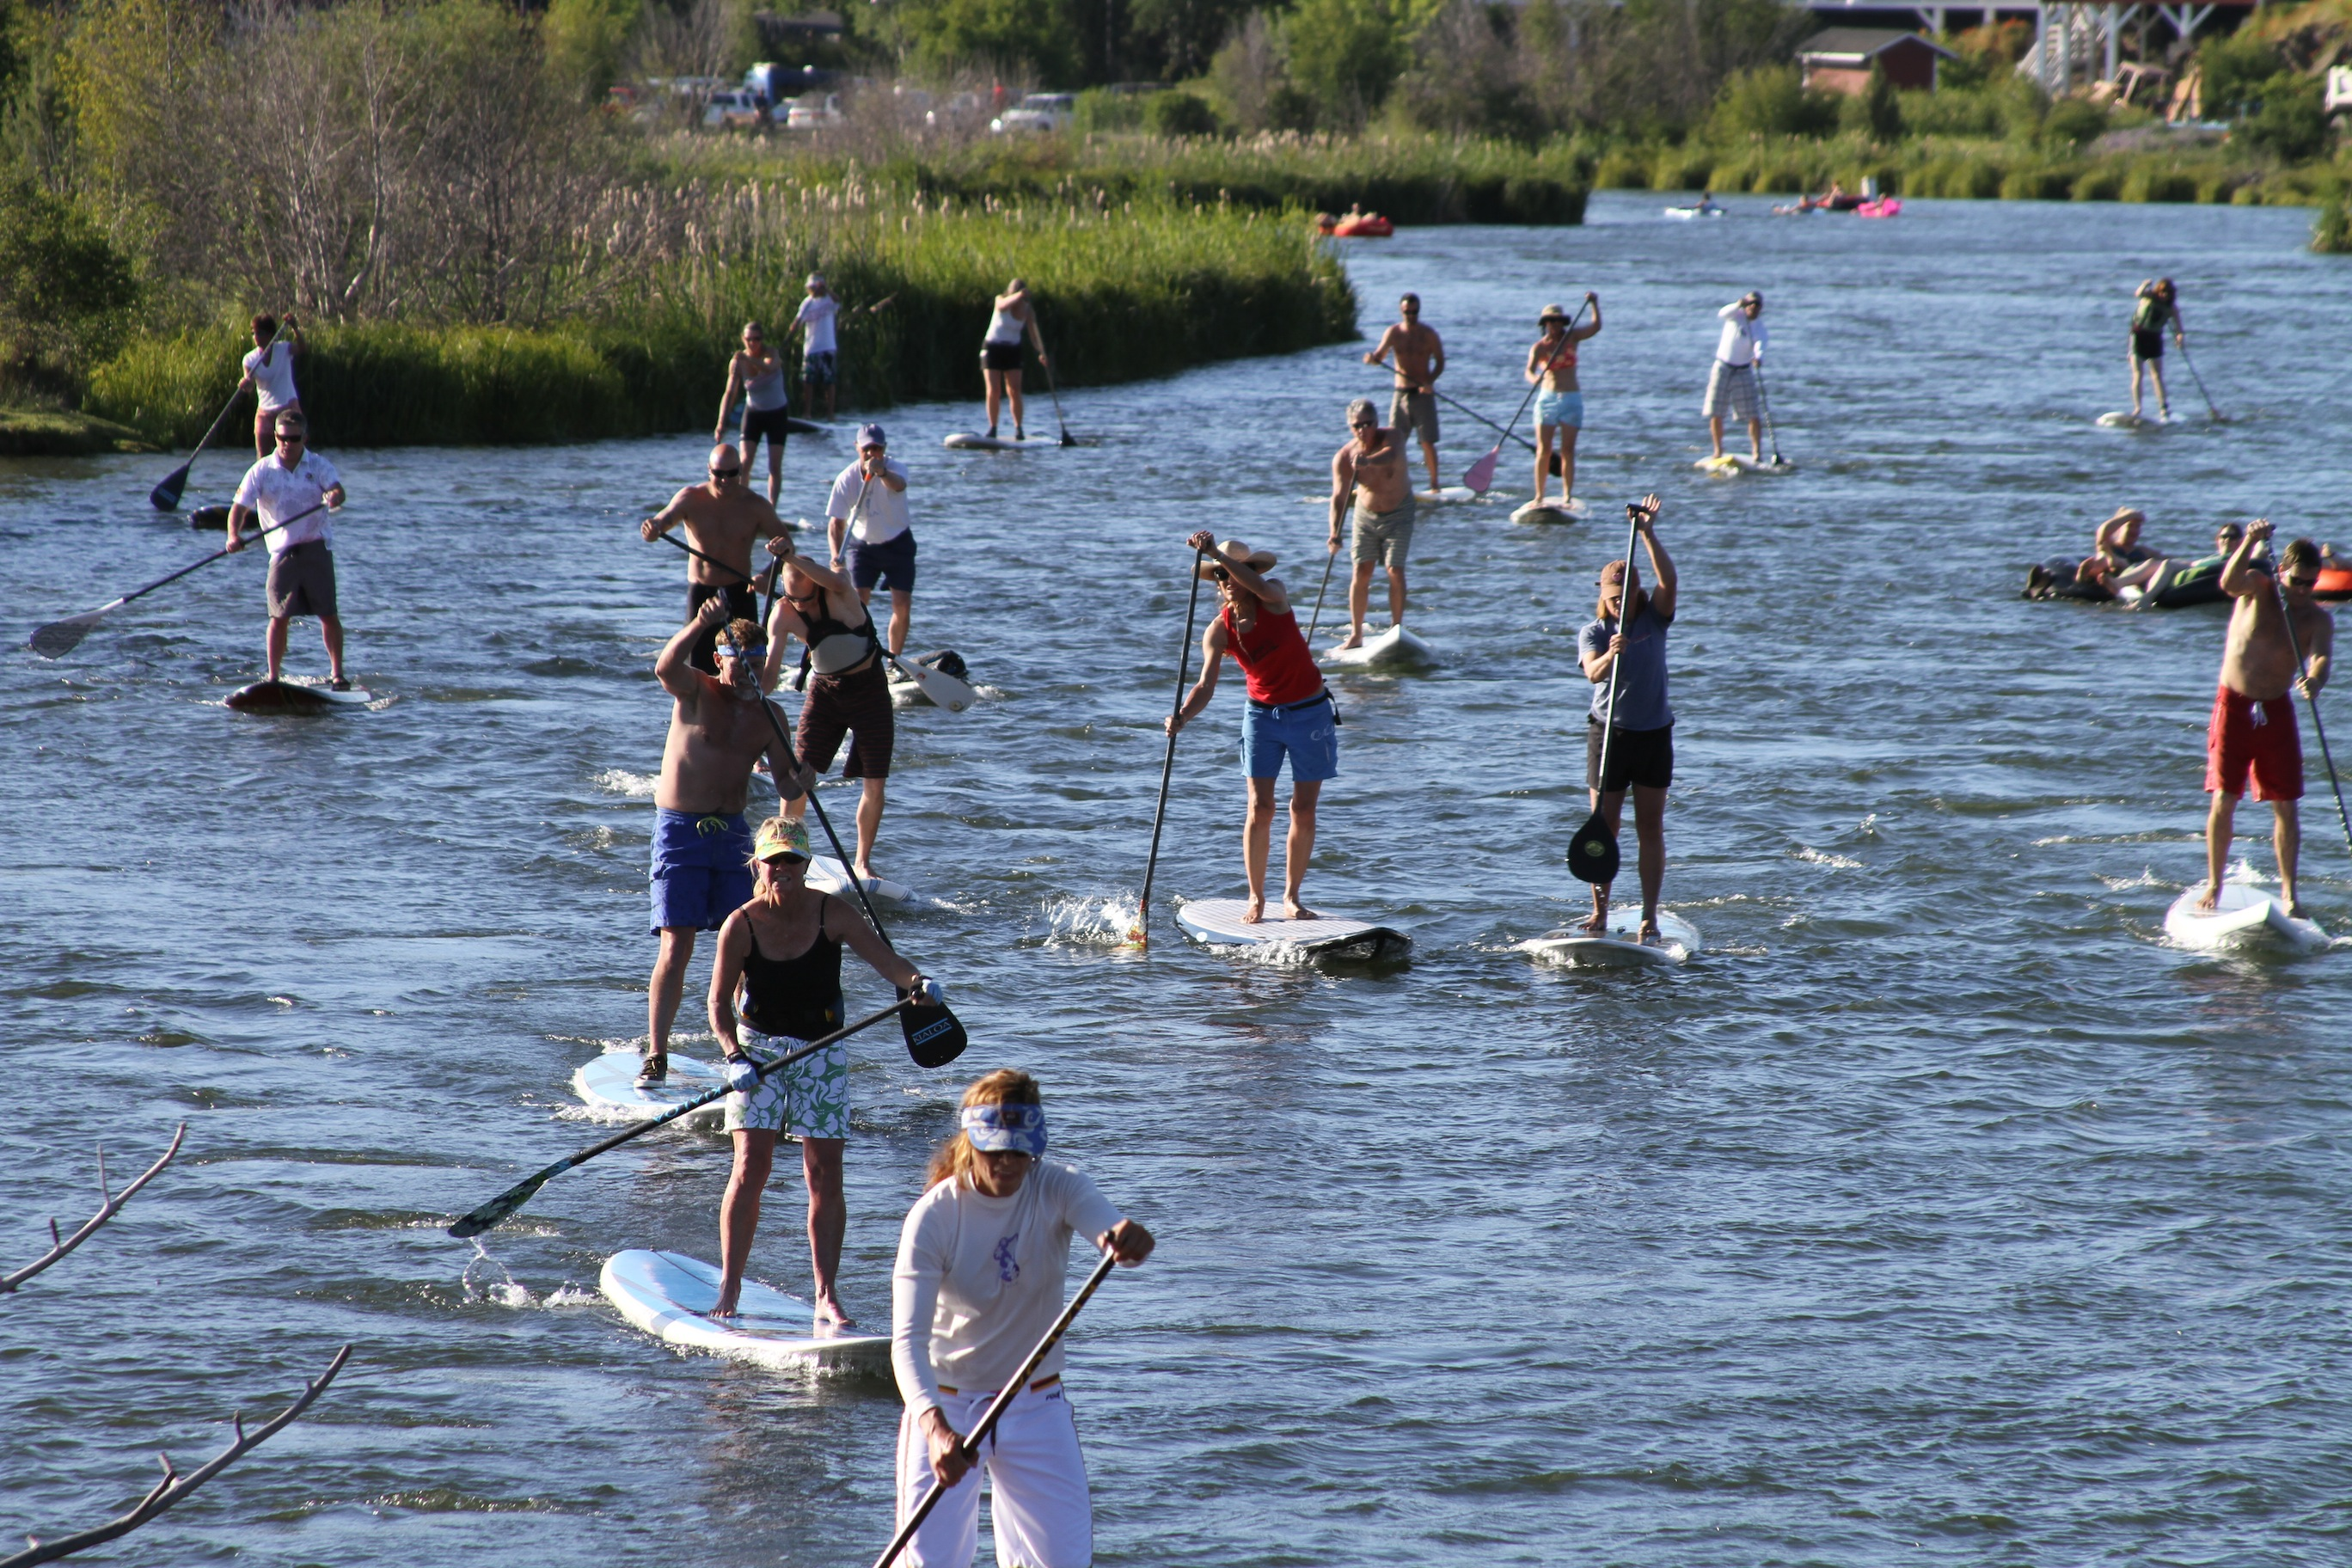 Online Retailer Of Stand Up Paddle Boards Expands Offerings